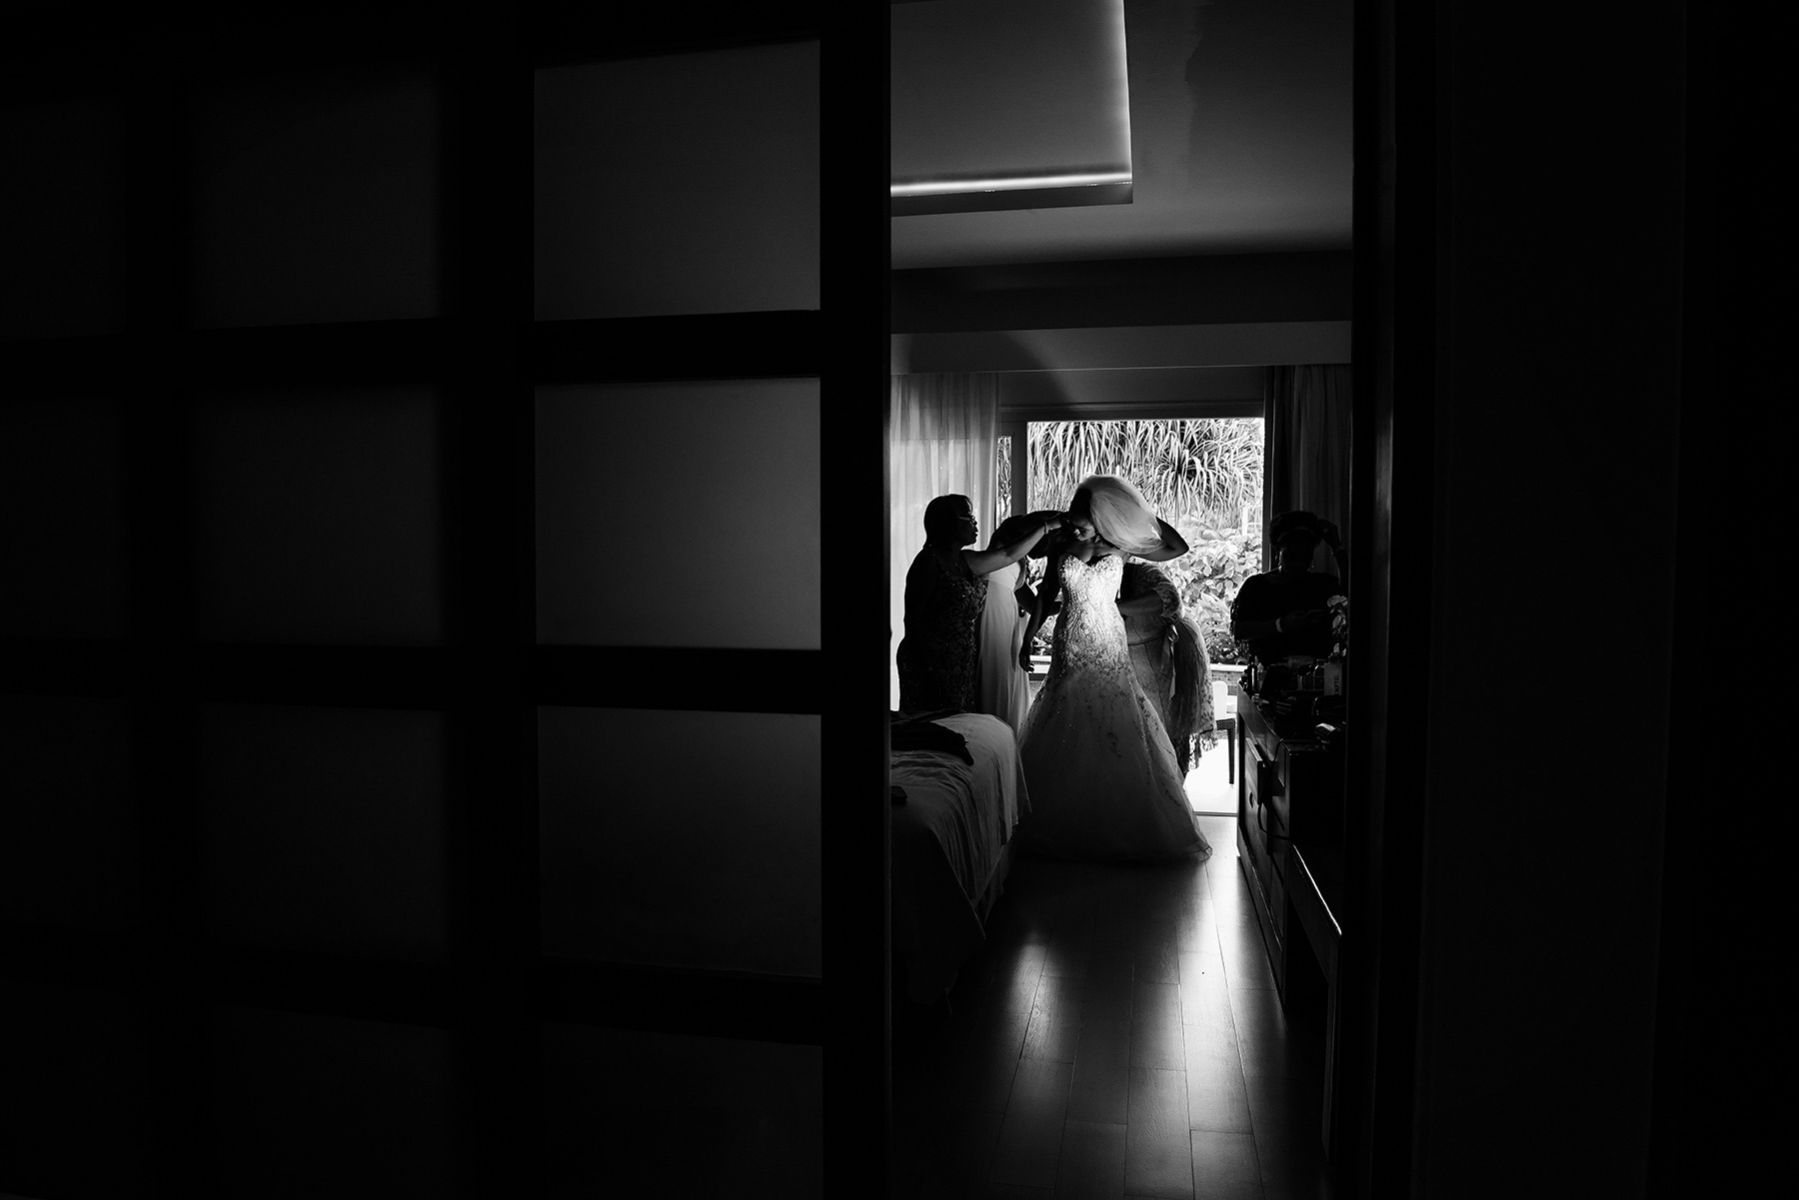 Getting ready, wedding story from Jamaica